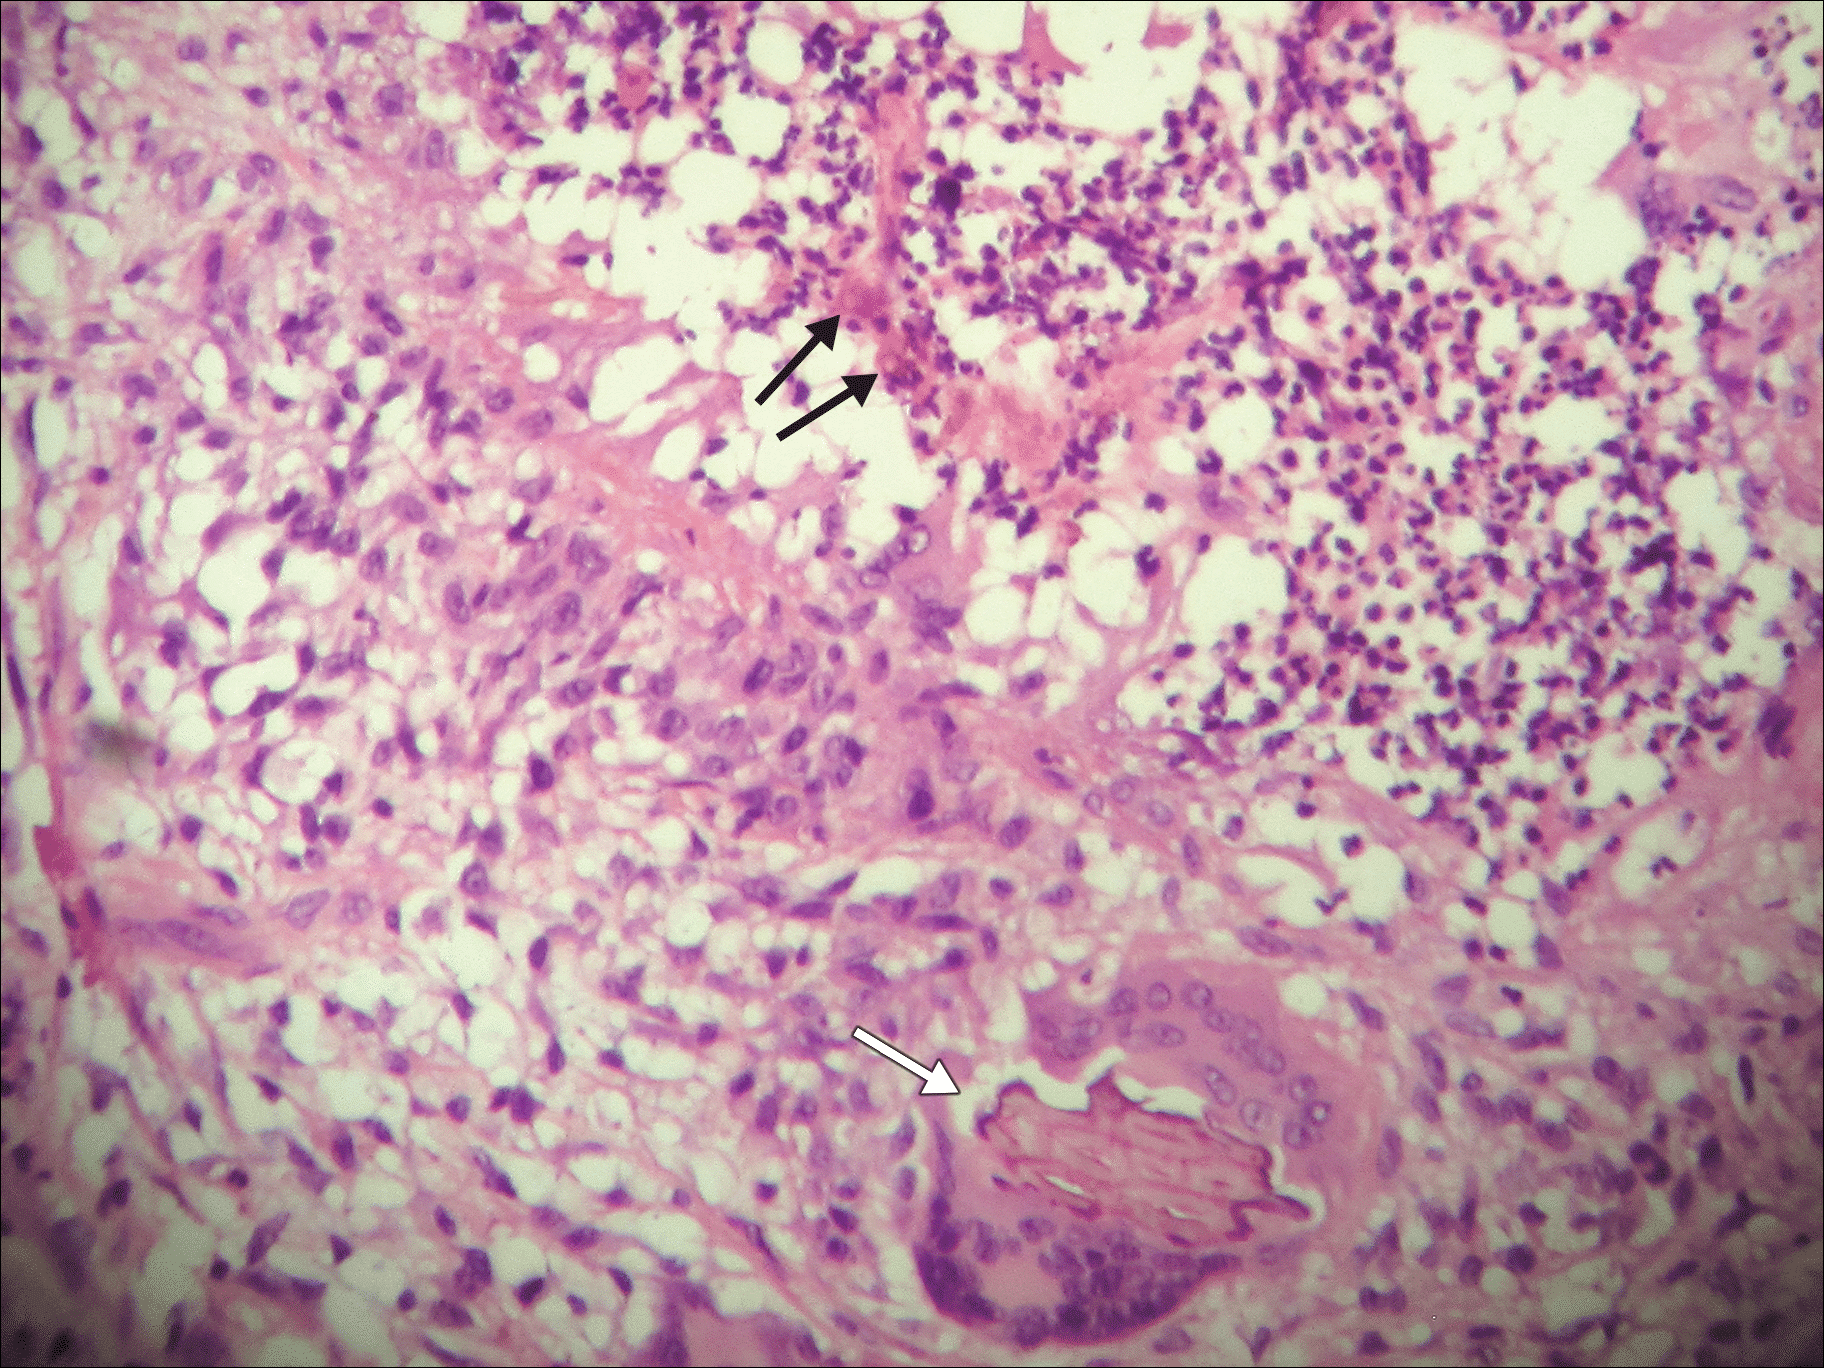 Chromoblastomycosis